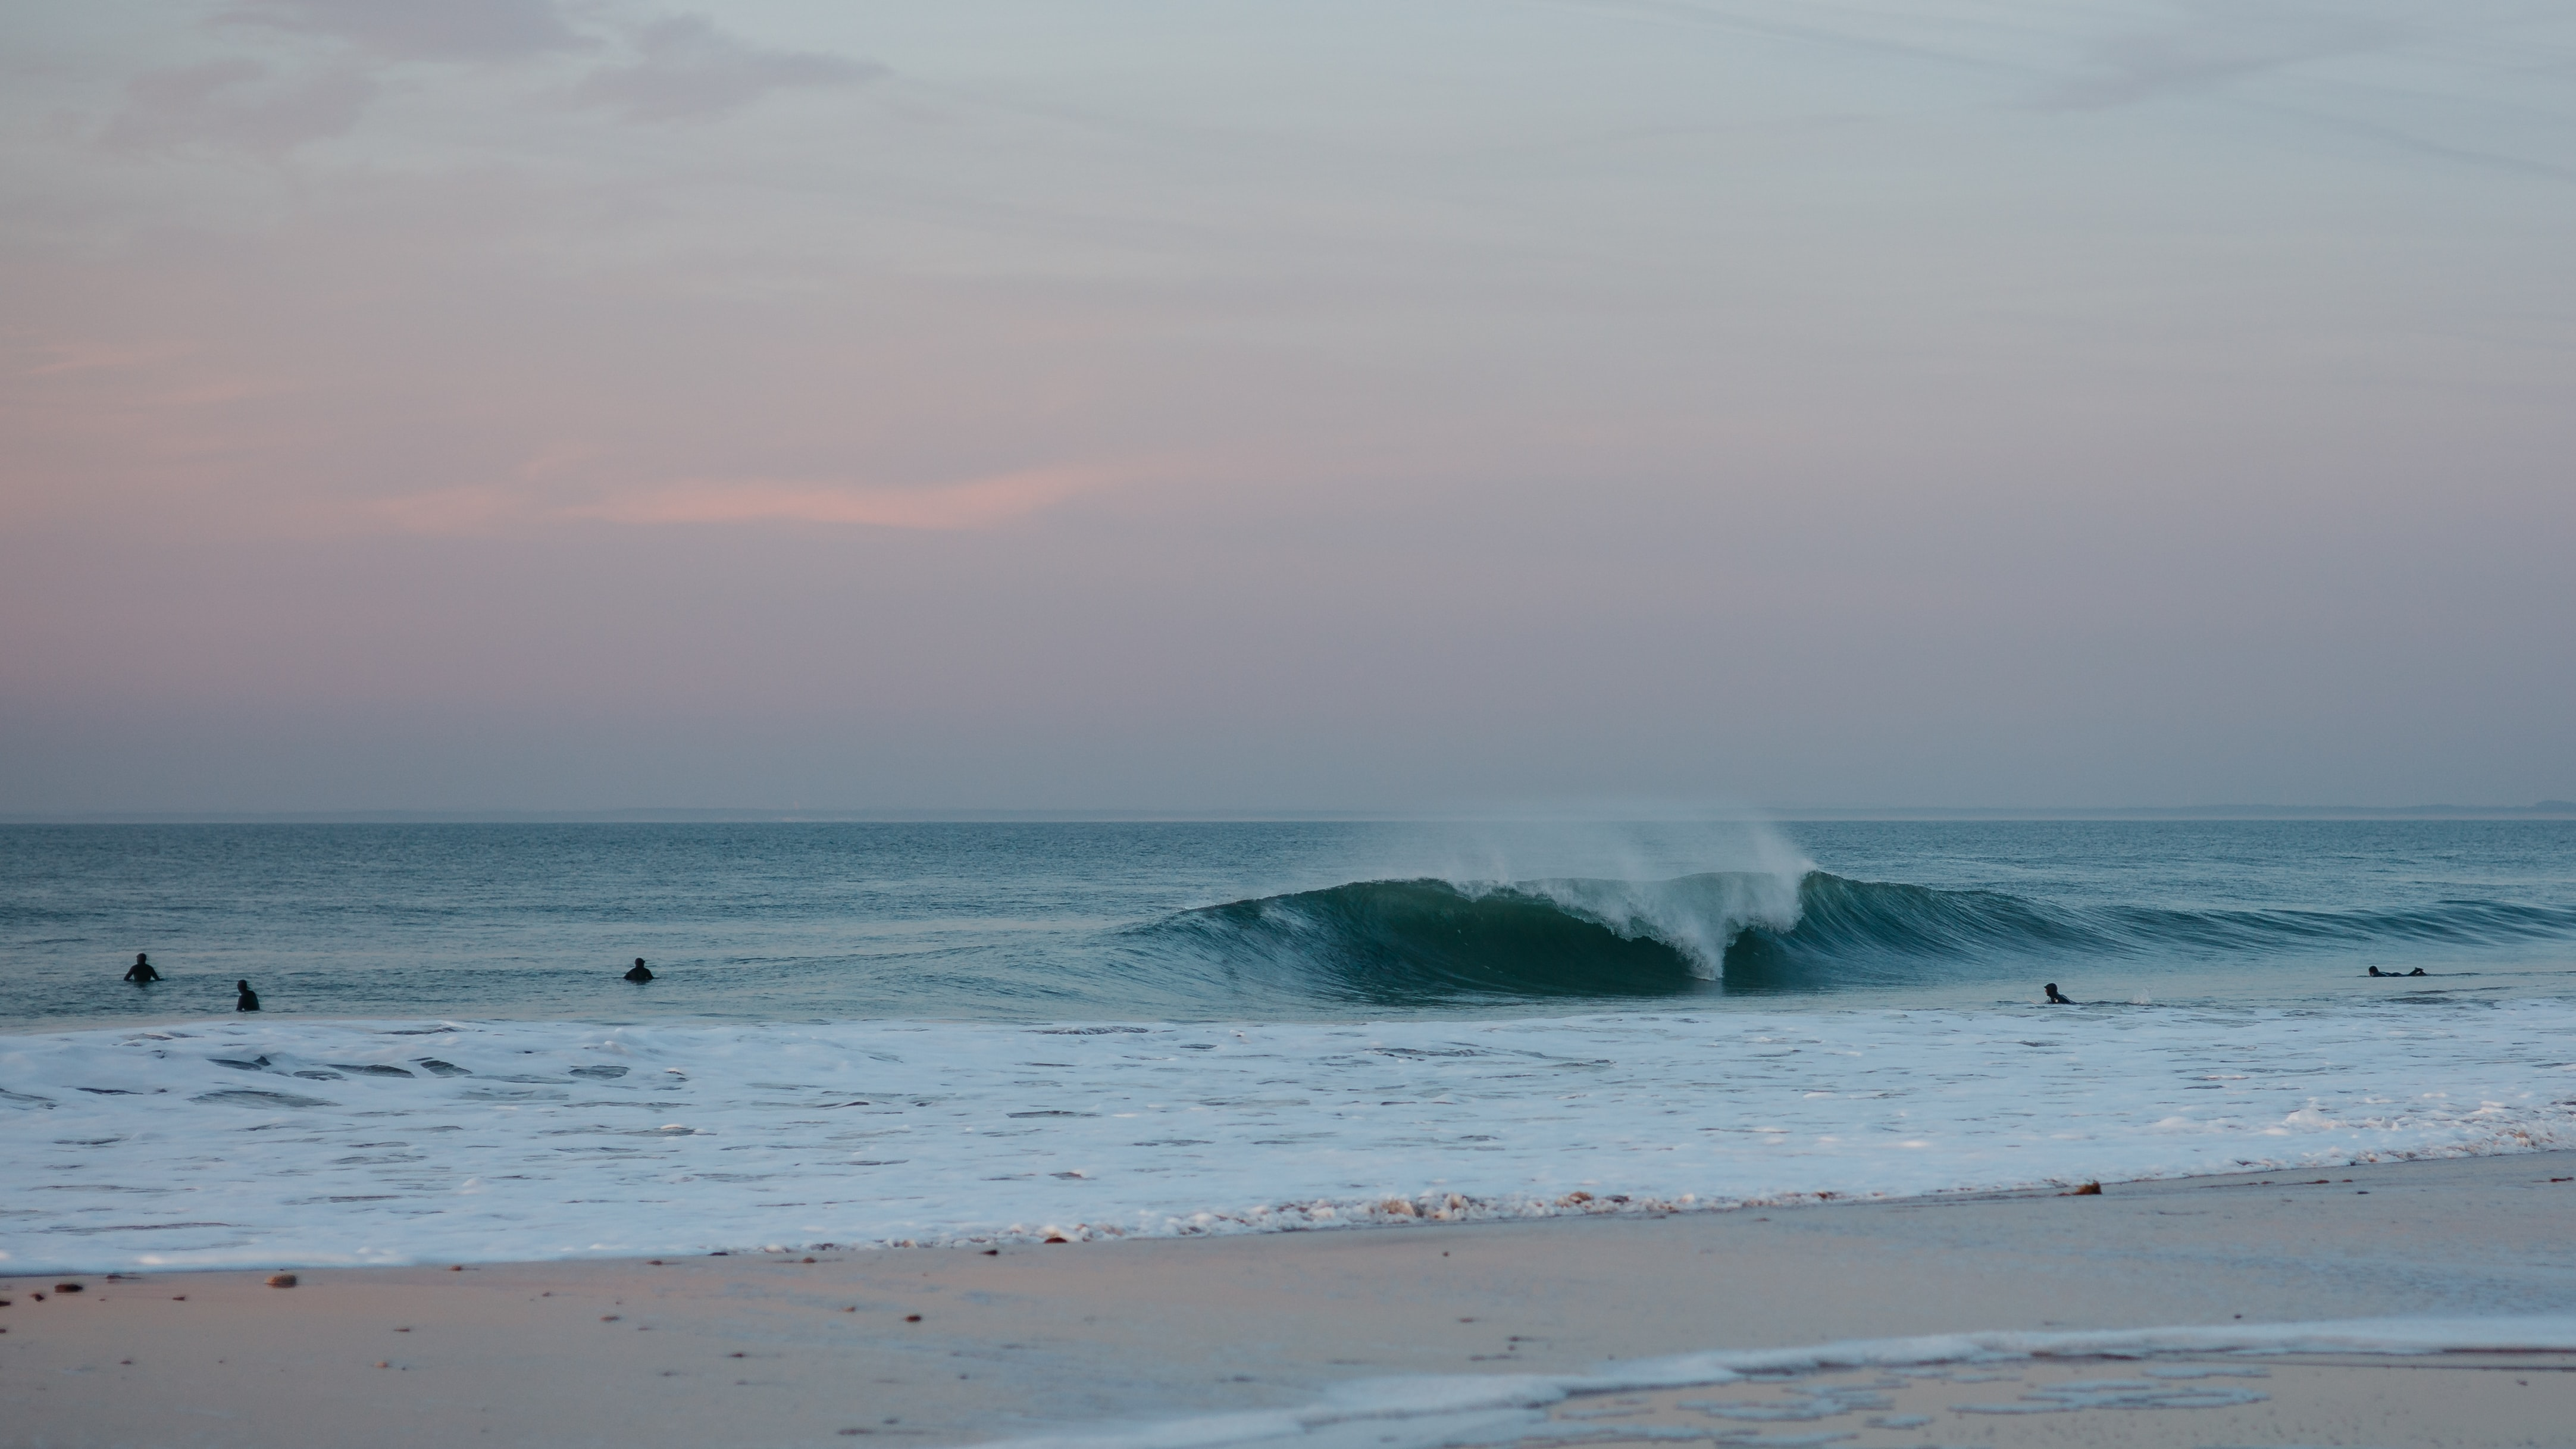 Ocean wave and people surfing at Plage du Petit Bec after sunset